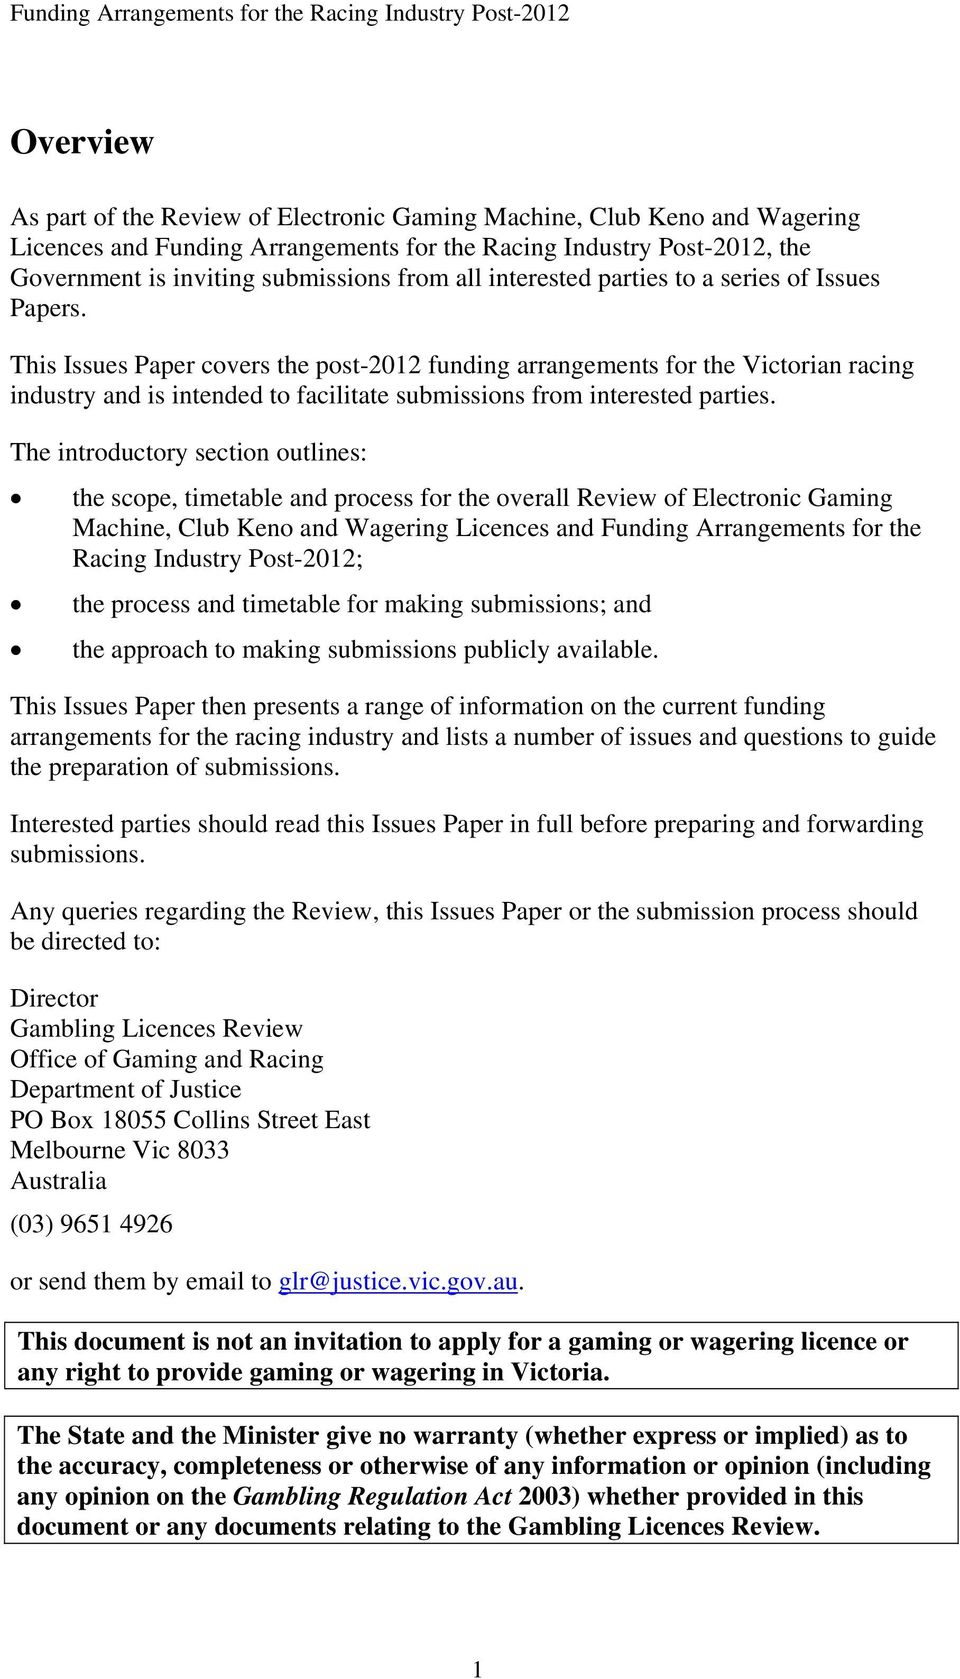 This Issues Paper covers the post-2012 funding arrangements for the Victorian racing industry and is intended to facilitate submissions from interested parties.